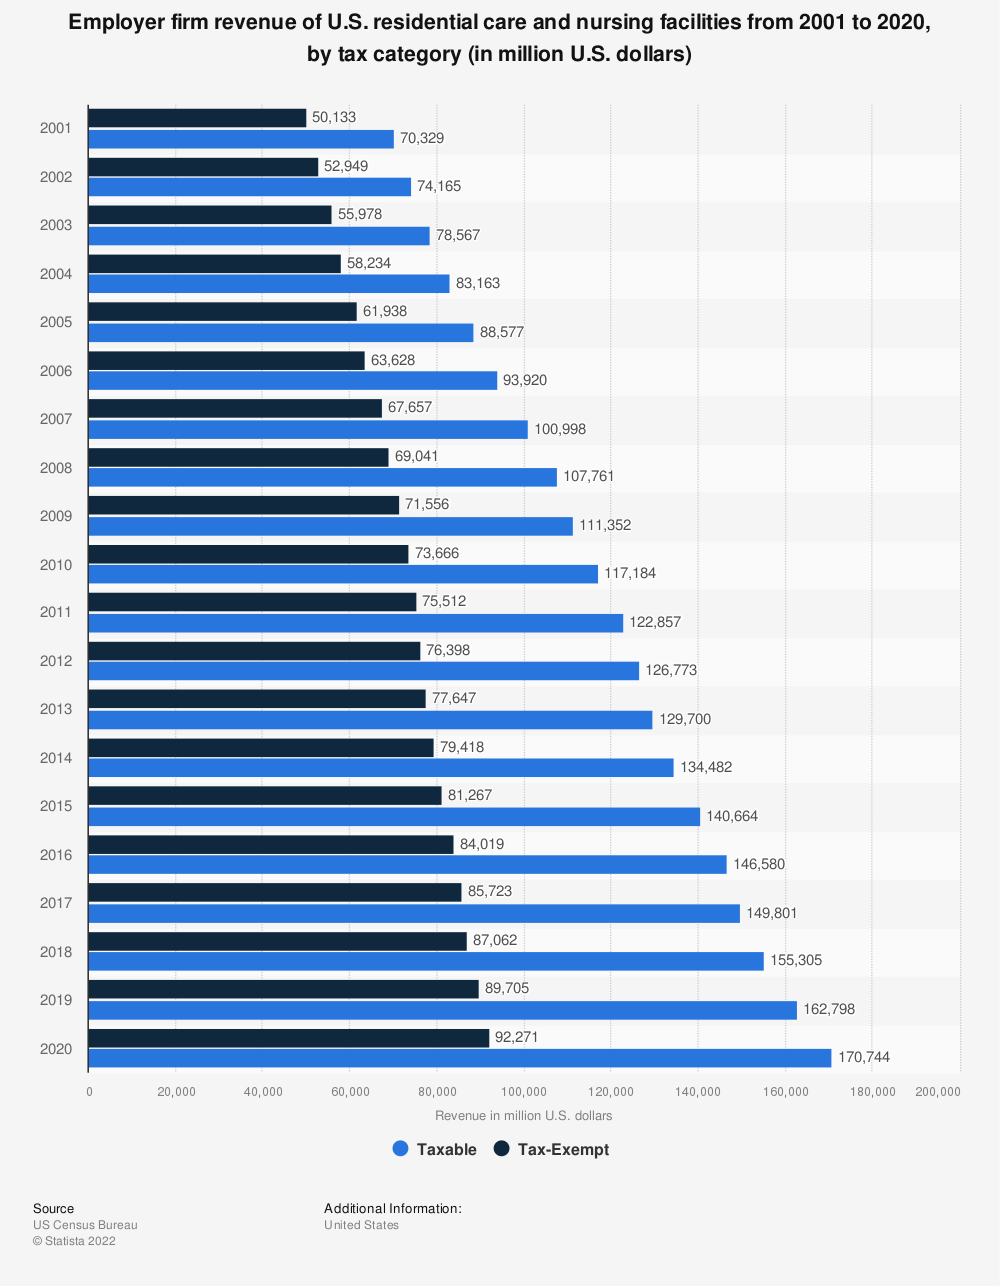 Statistic: Employer firm revenue of U.S. residential care and nursing facilities from 2001 to 2017, by tax category (in million U.S. dollars) | Statista